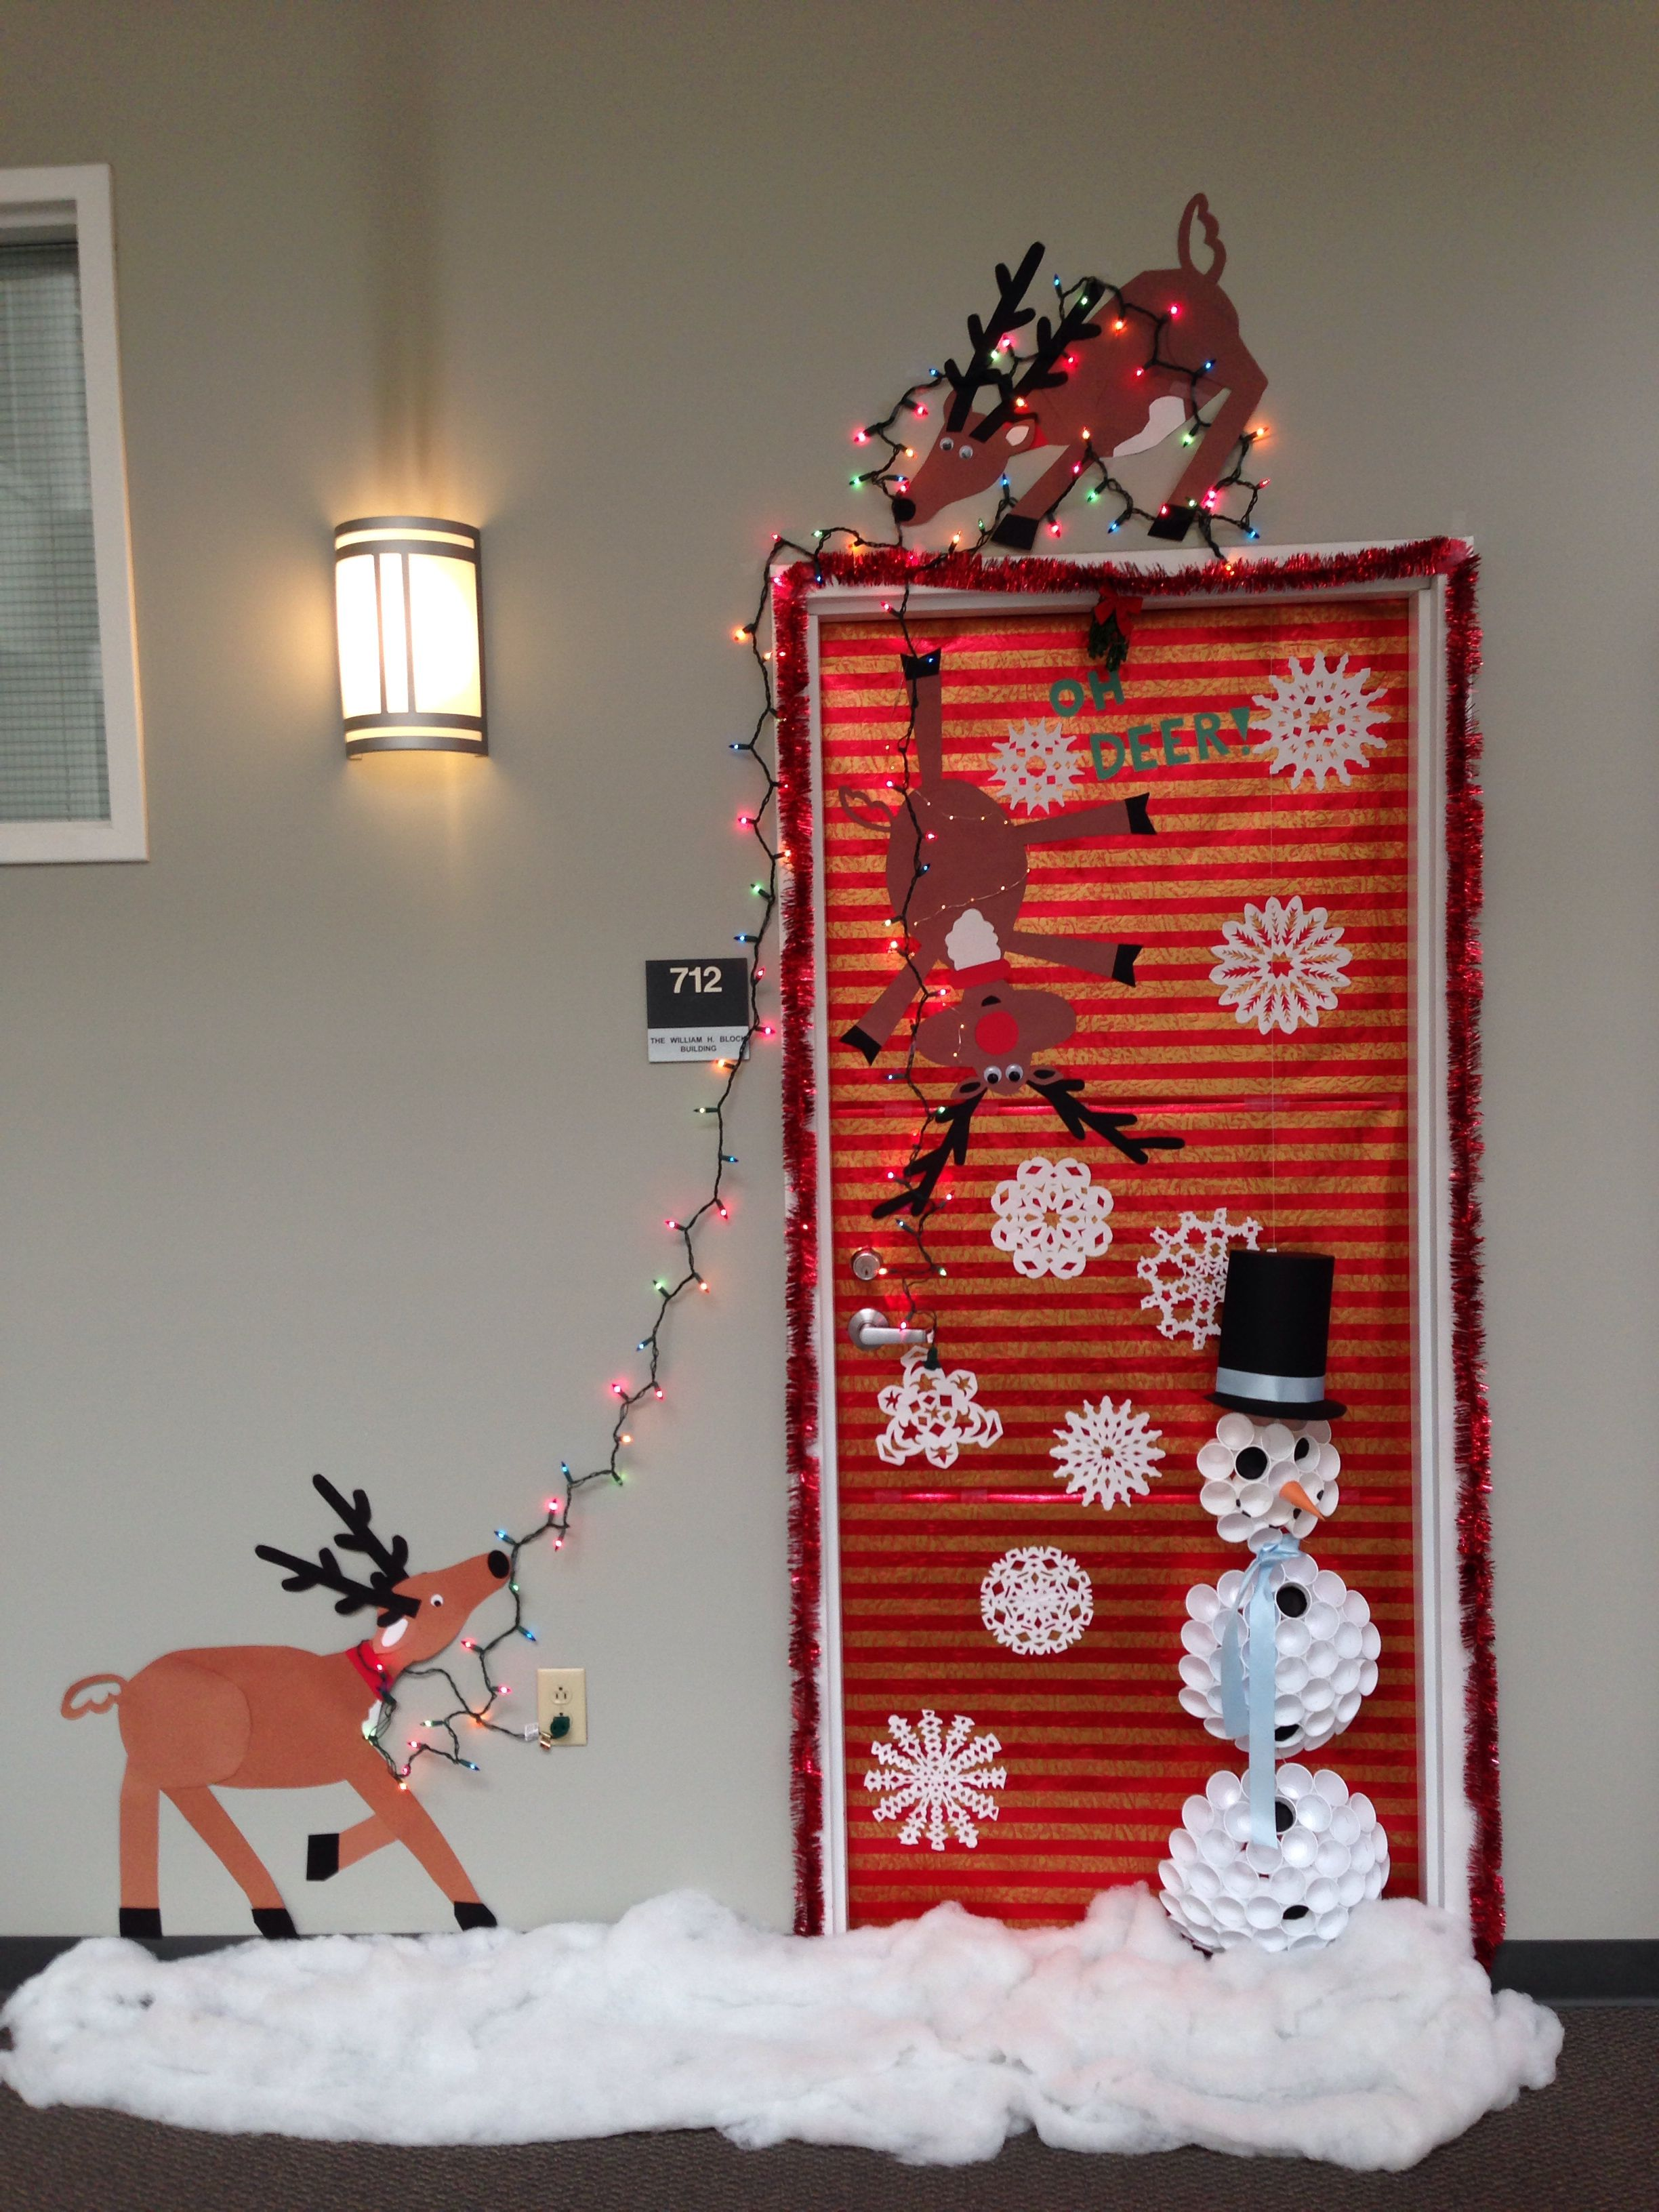 Our Christmas door decoration FIRST PLACE!! Made